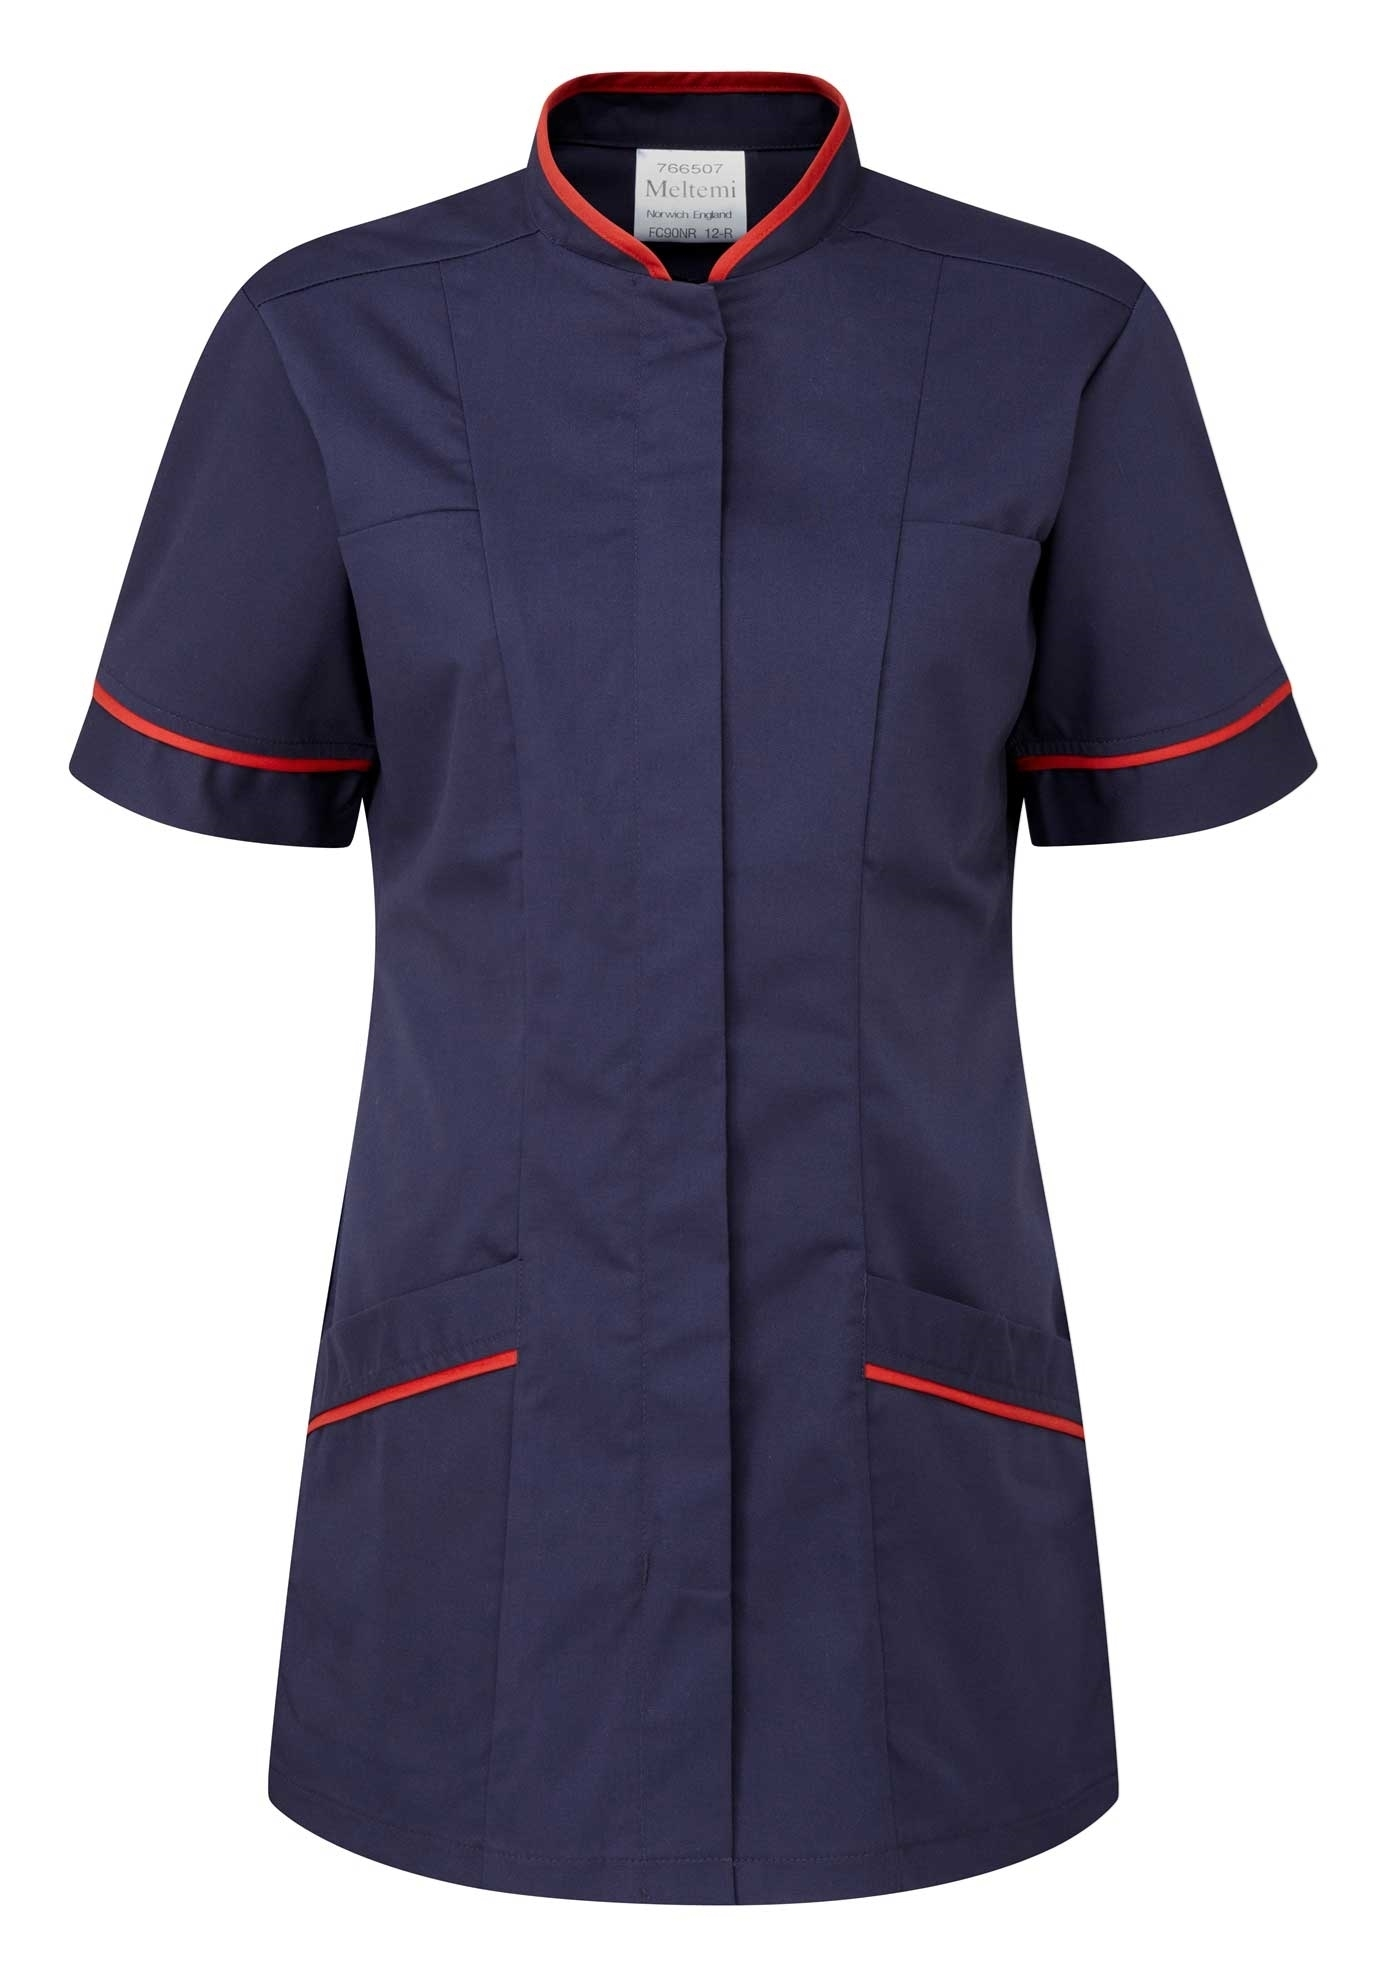 Picture of Professional Tunic - Navy/Red